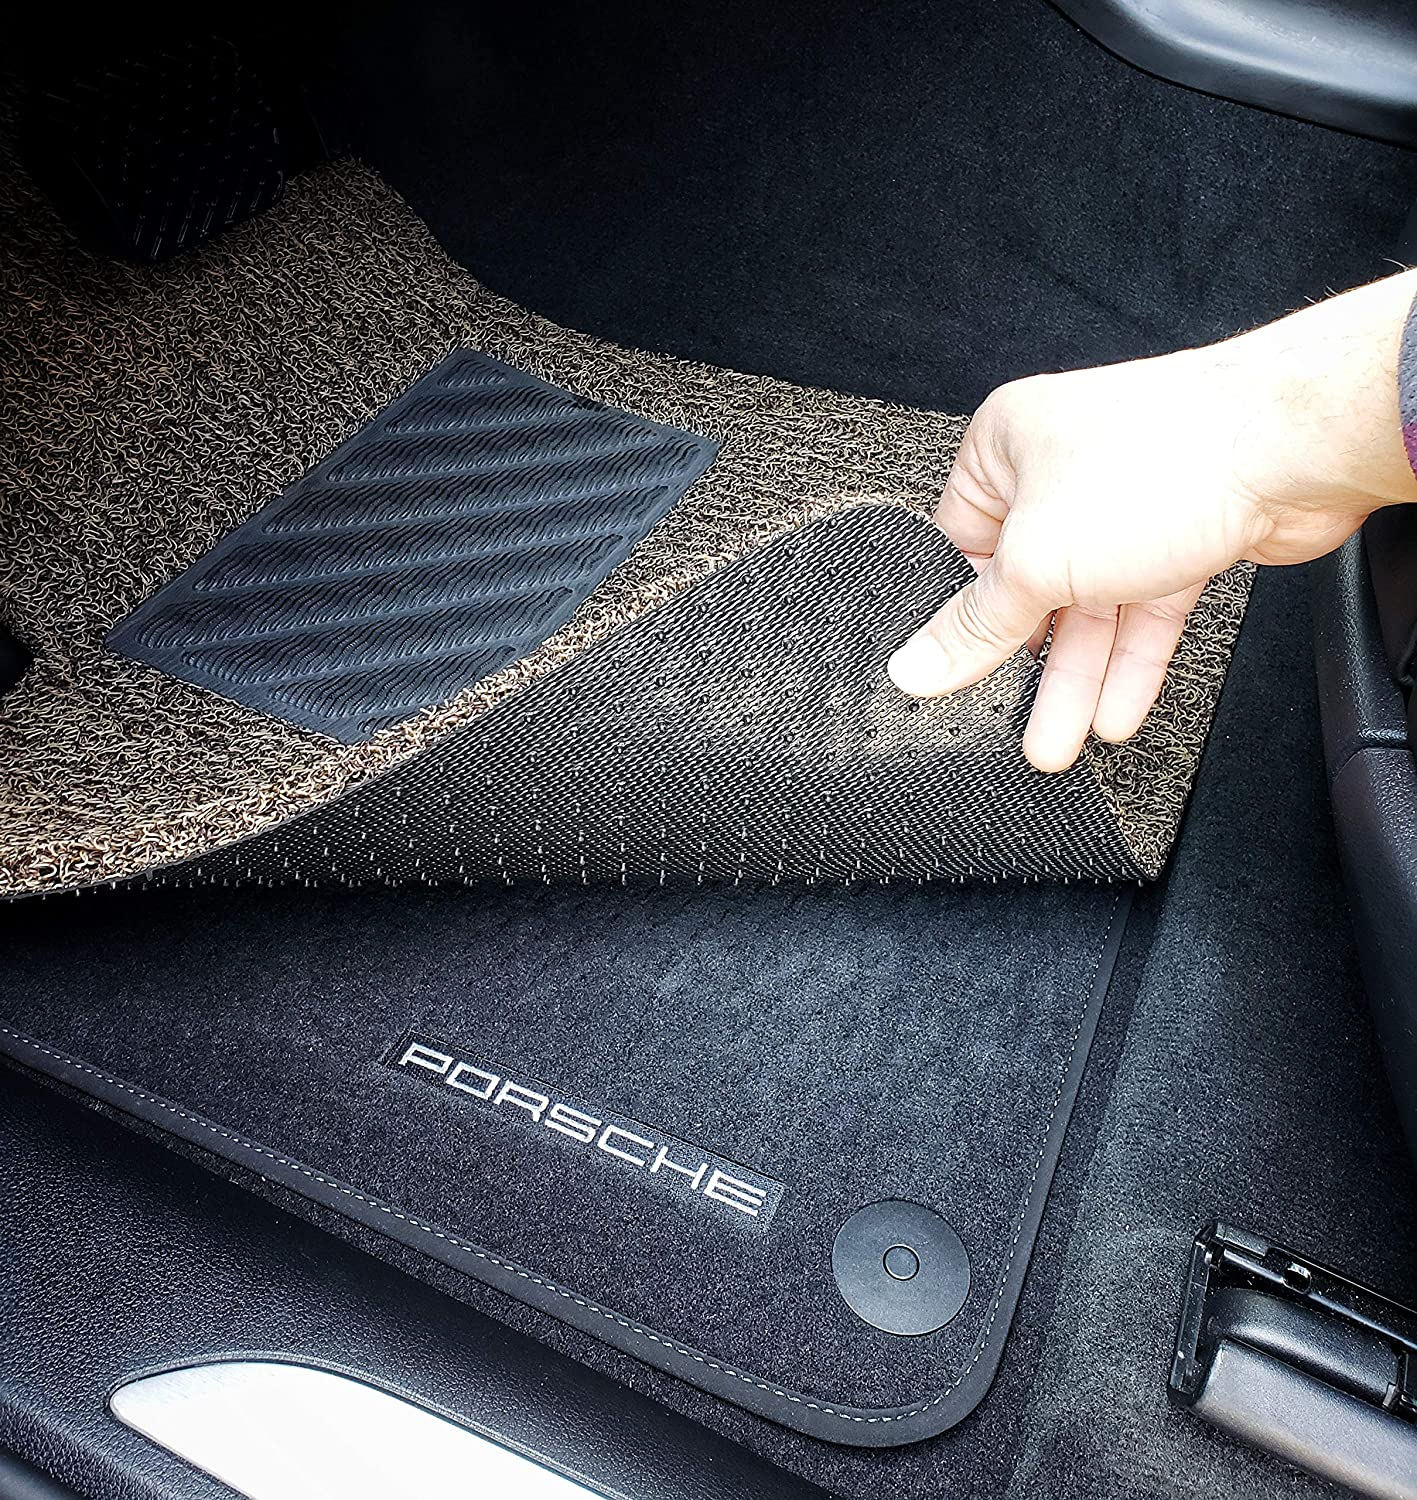 Beige and Brown Autotech Zone Custom Fit Heavy Duty Custom Fit Car Floor Mat for 2010-2014 Subaru Outback Wagon All Weather Protector 4 Piece Set